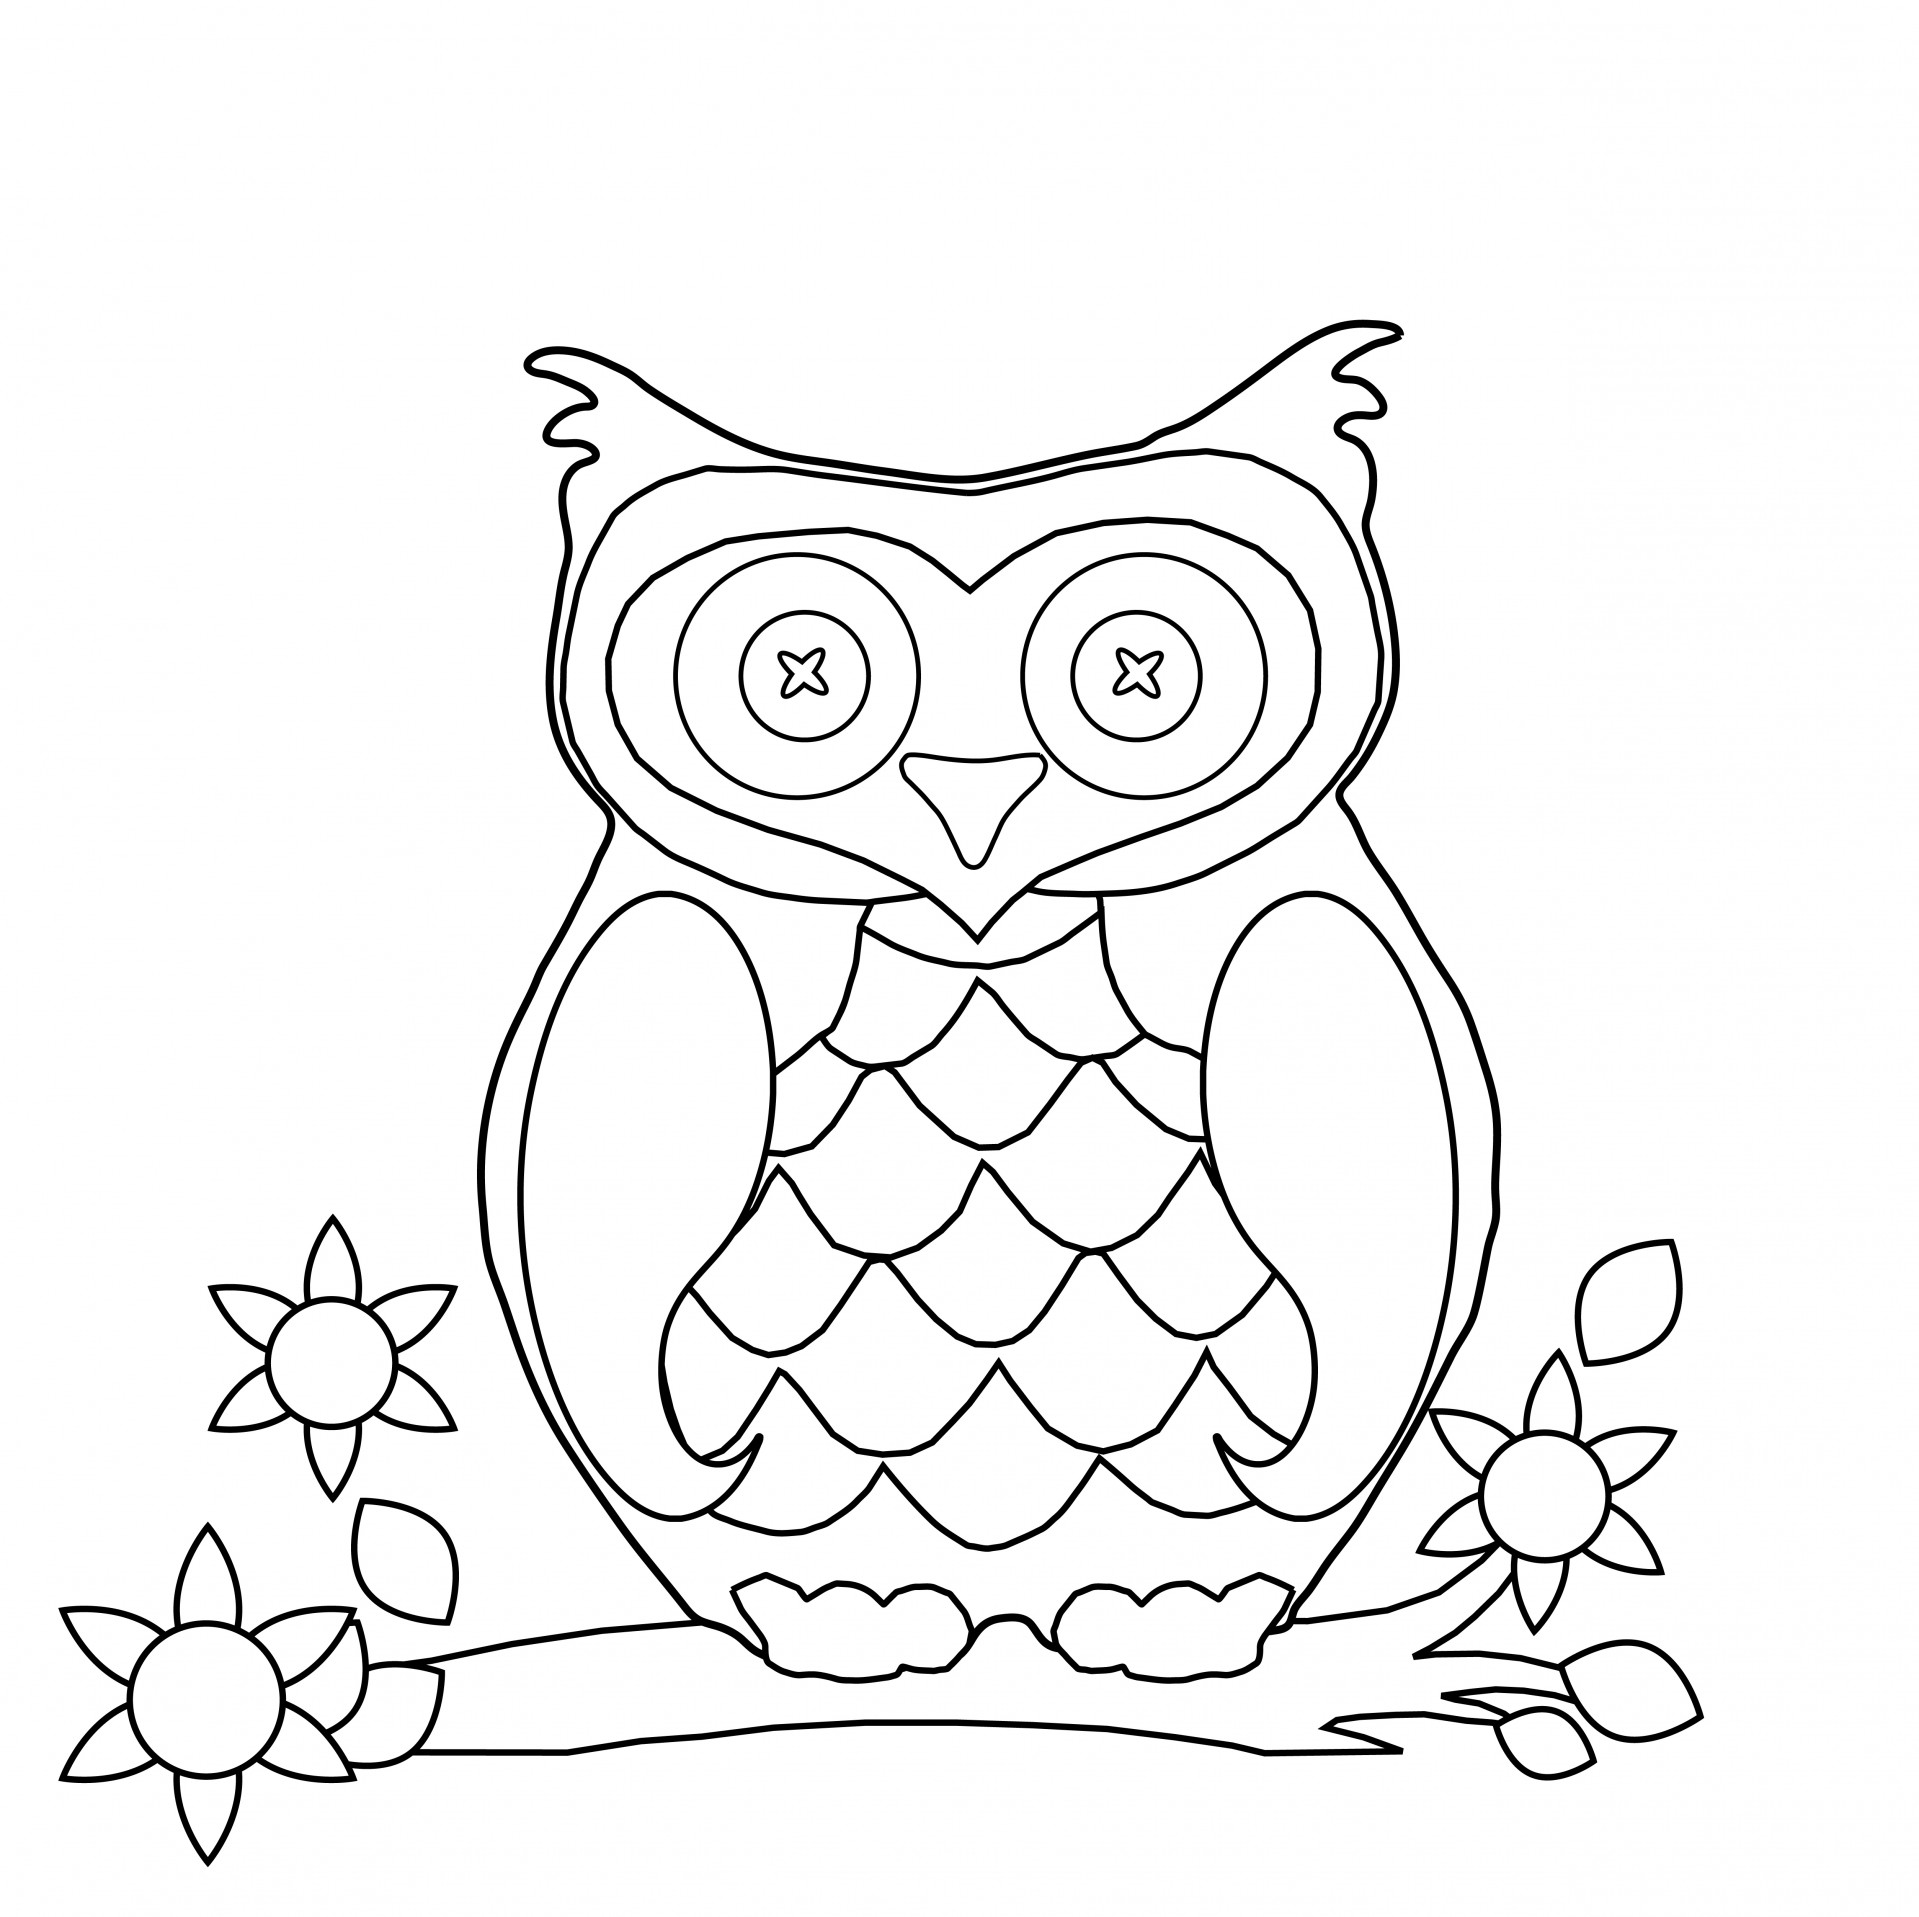 free childrens coloring pages alosrigons disney coloring pages for kids free coloring pages childrens